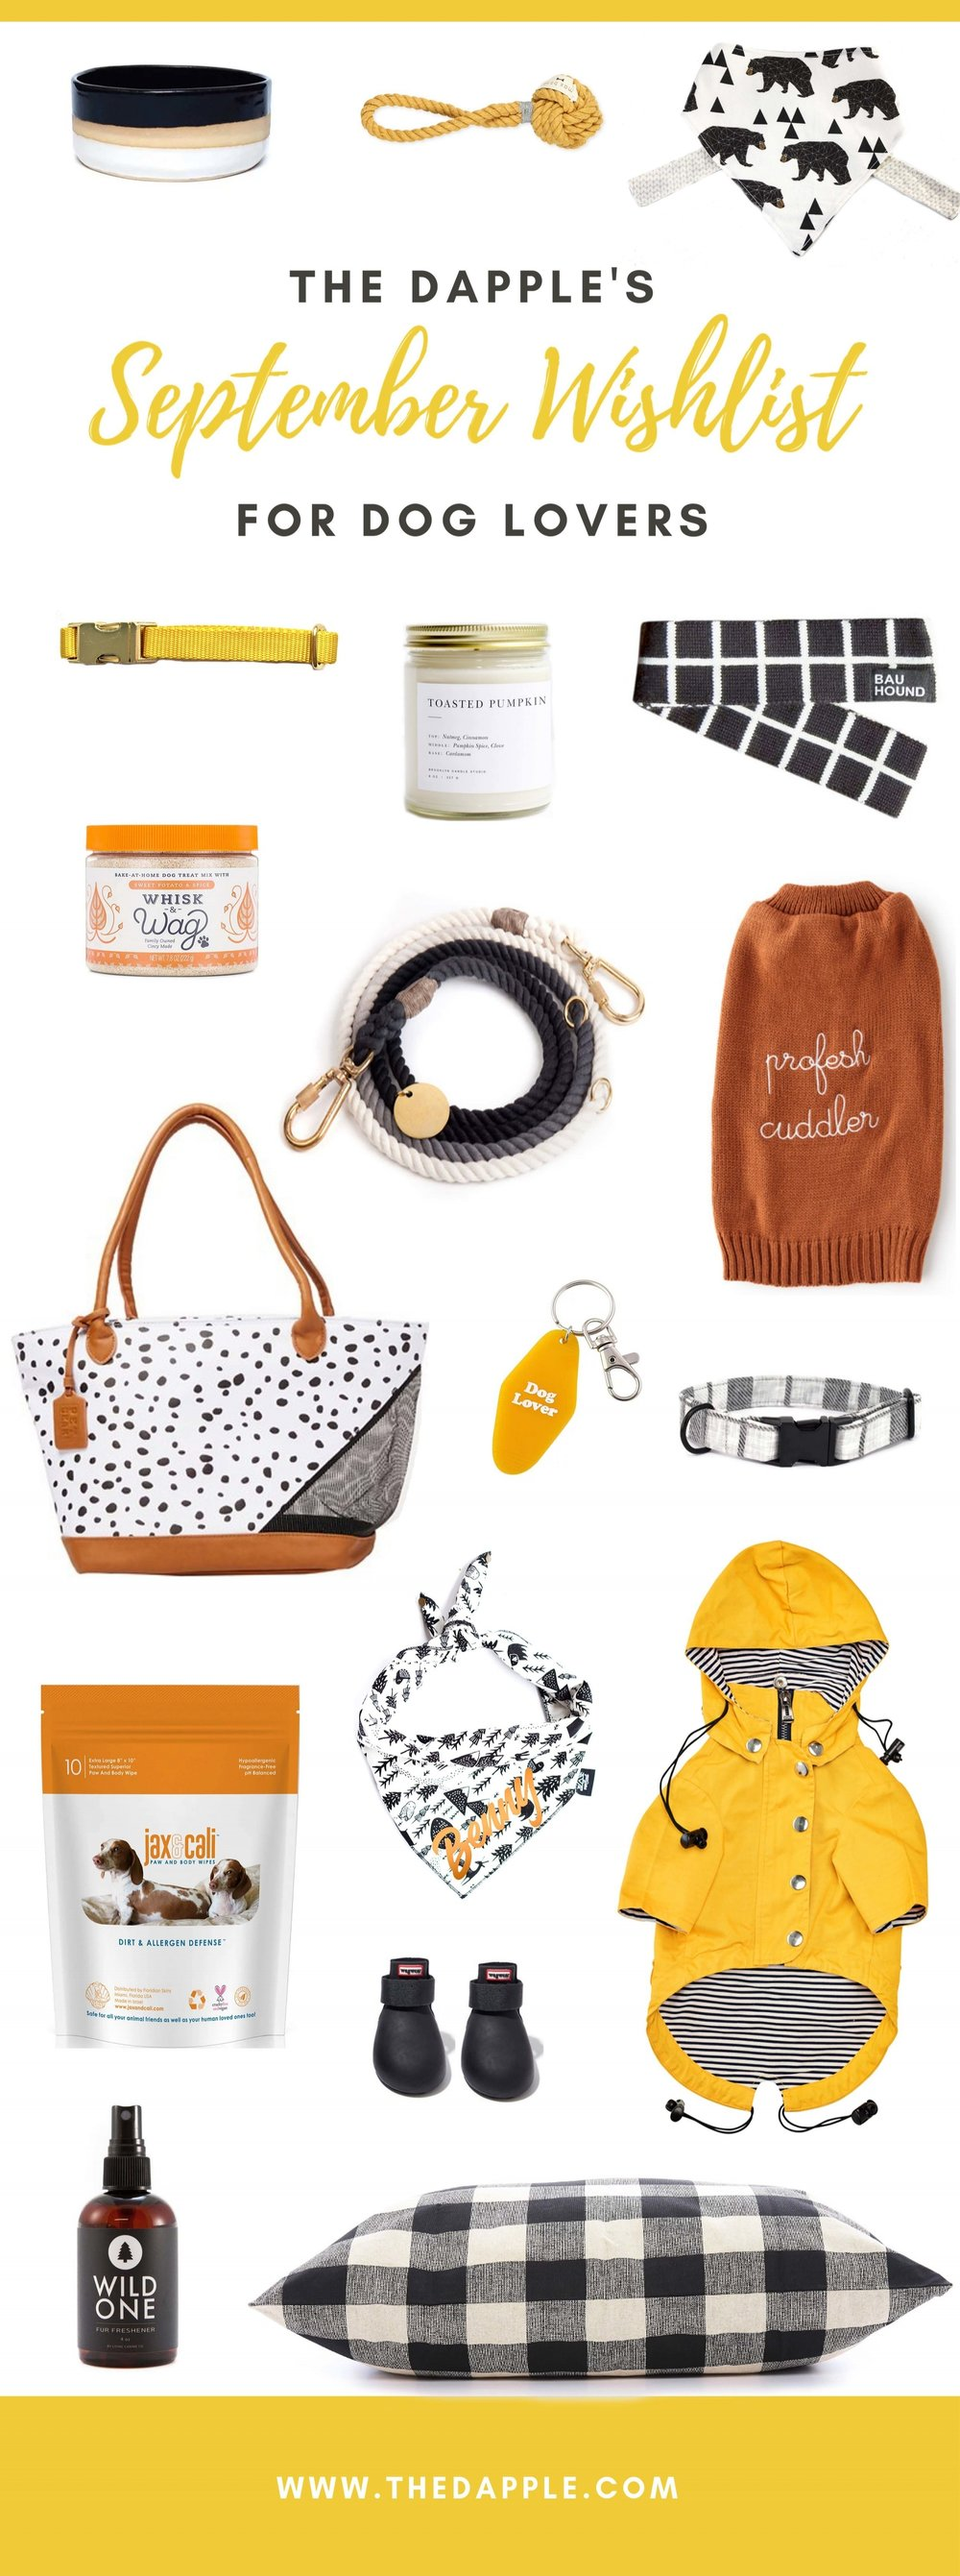 Best New Items for Dogs and Dog Lovers September 2018 Shopping Guide on The Dapple Lifestyle Blog